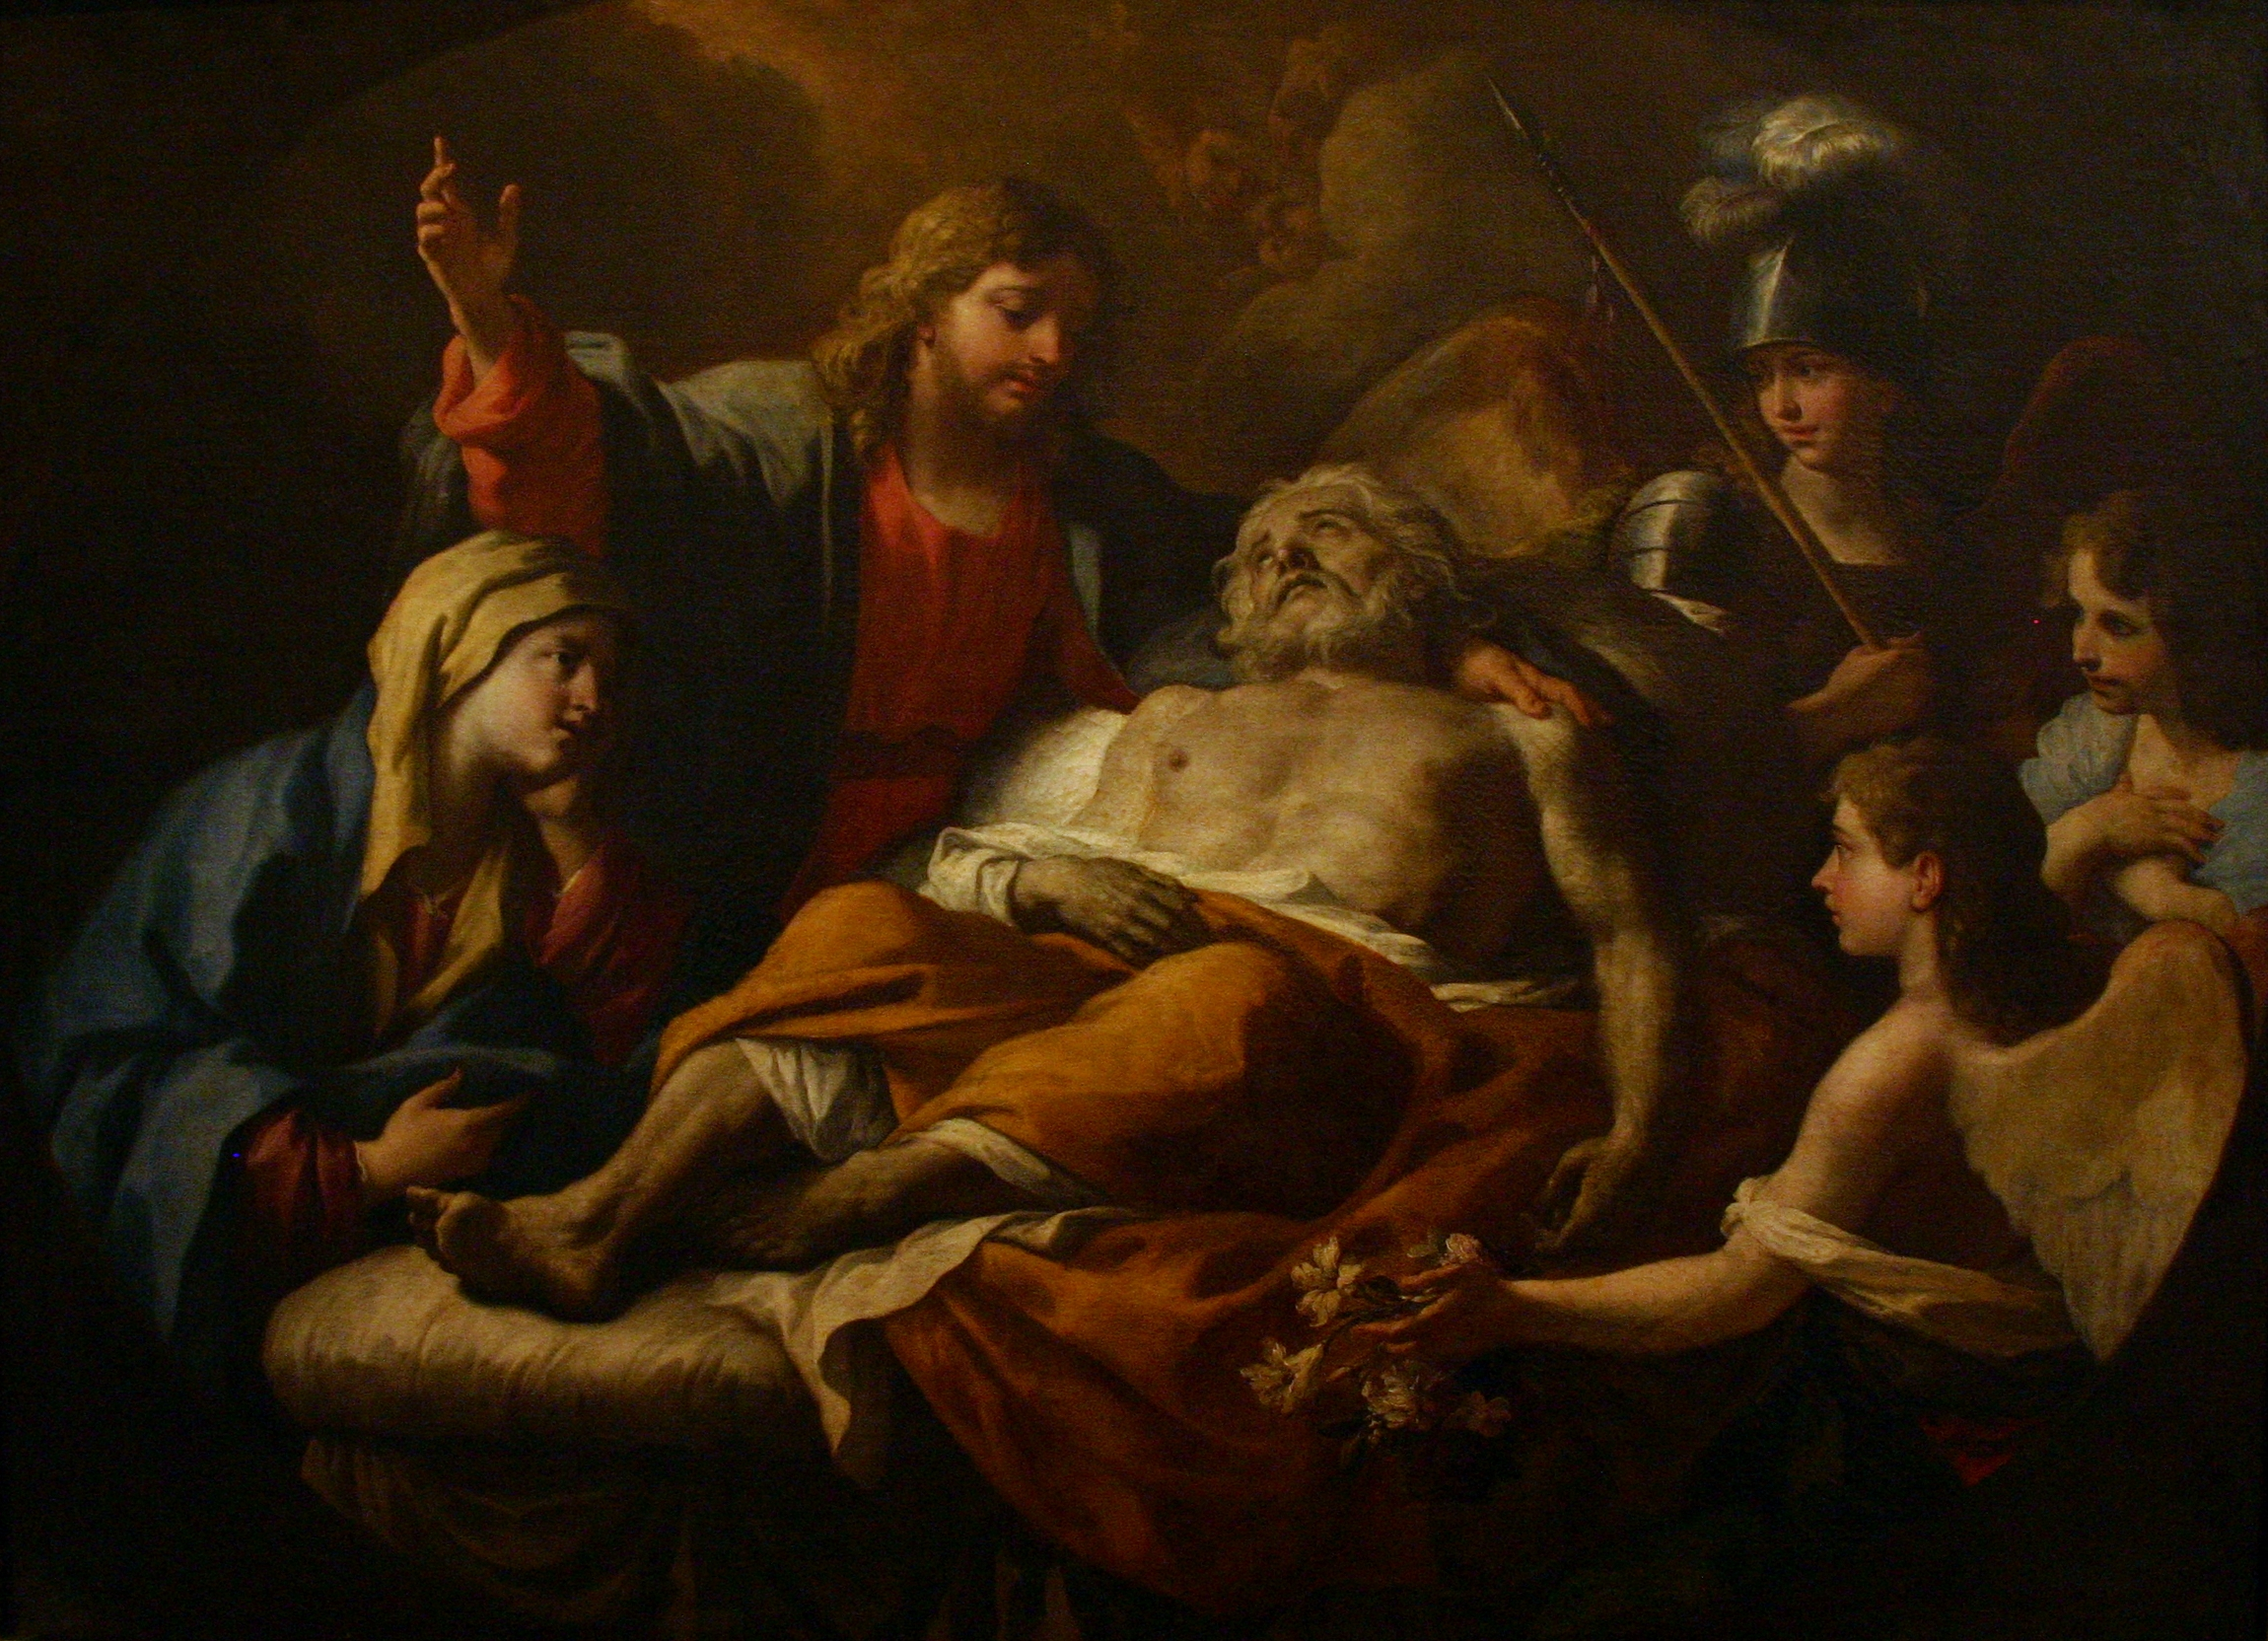 https://upload.wikimedia.org/wikipedia/commons/4/47/Death_of_St_Joseph_-_Paolo_de_Matteis_-_Castel_Nuovo_-_Naples_-_Italy_2015.JPG